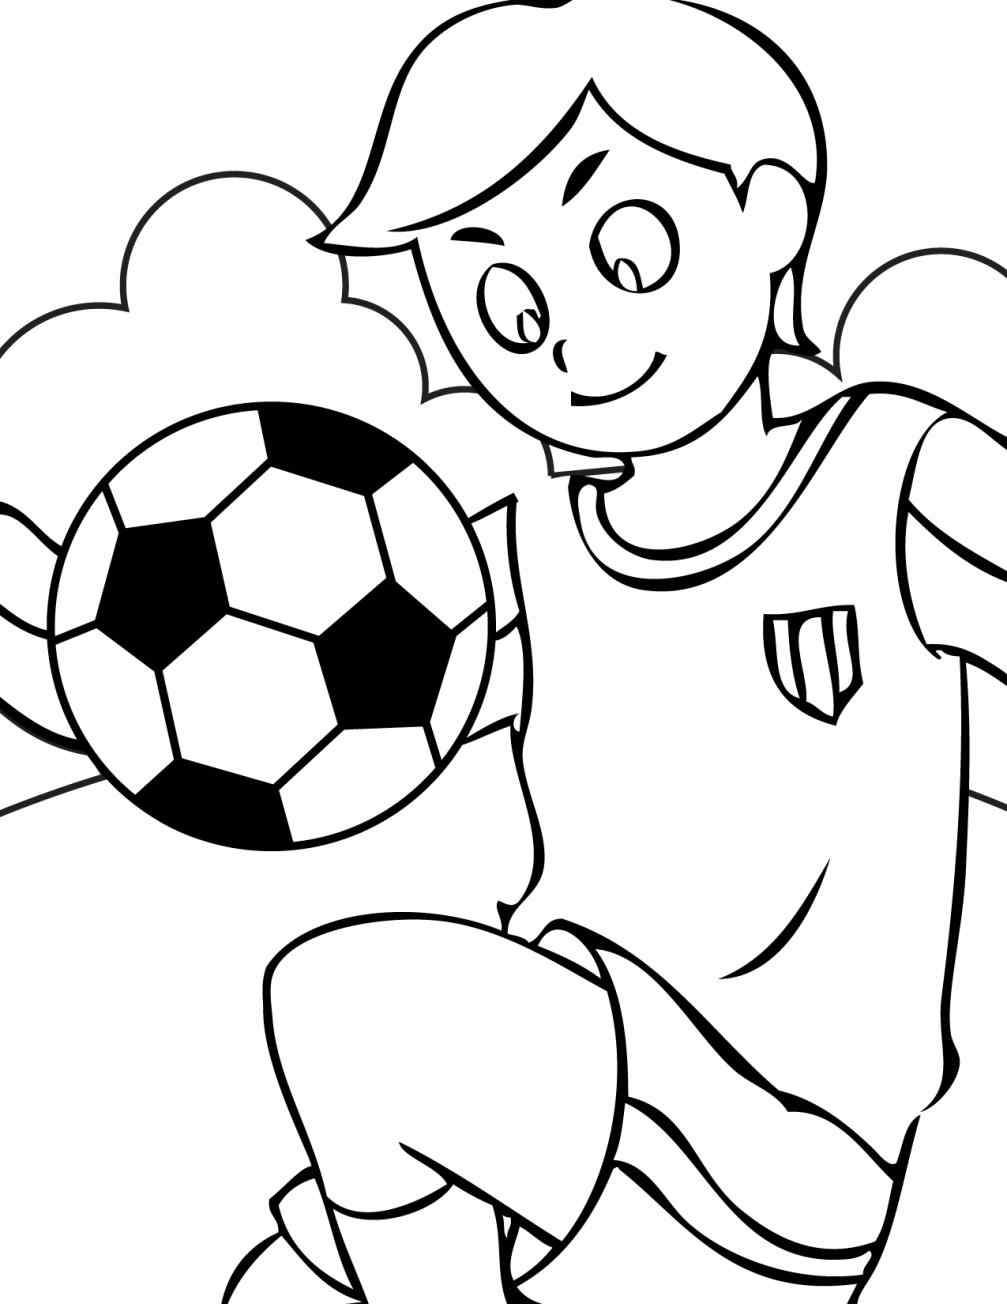 1007x1304 Coloring Pages For Boys Football Players Online Coloring Printable